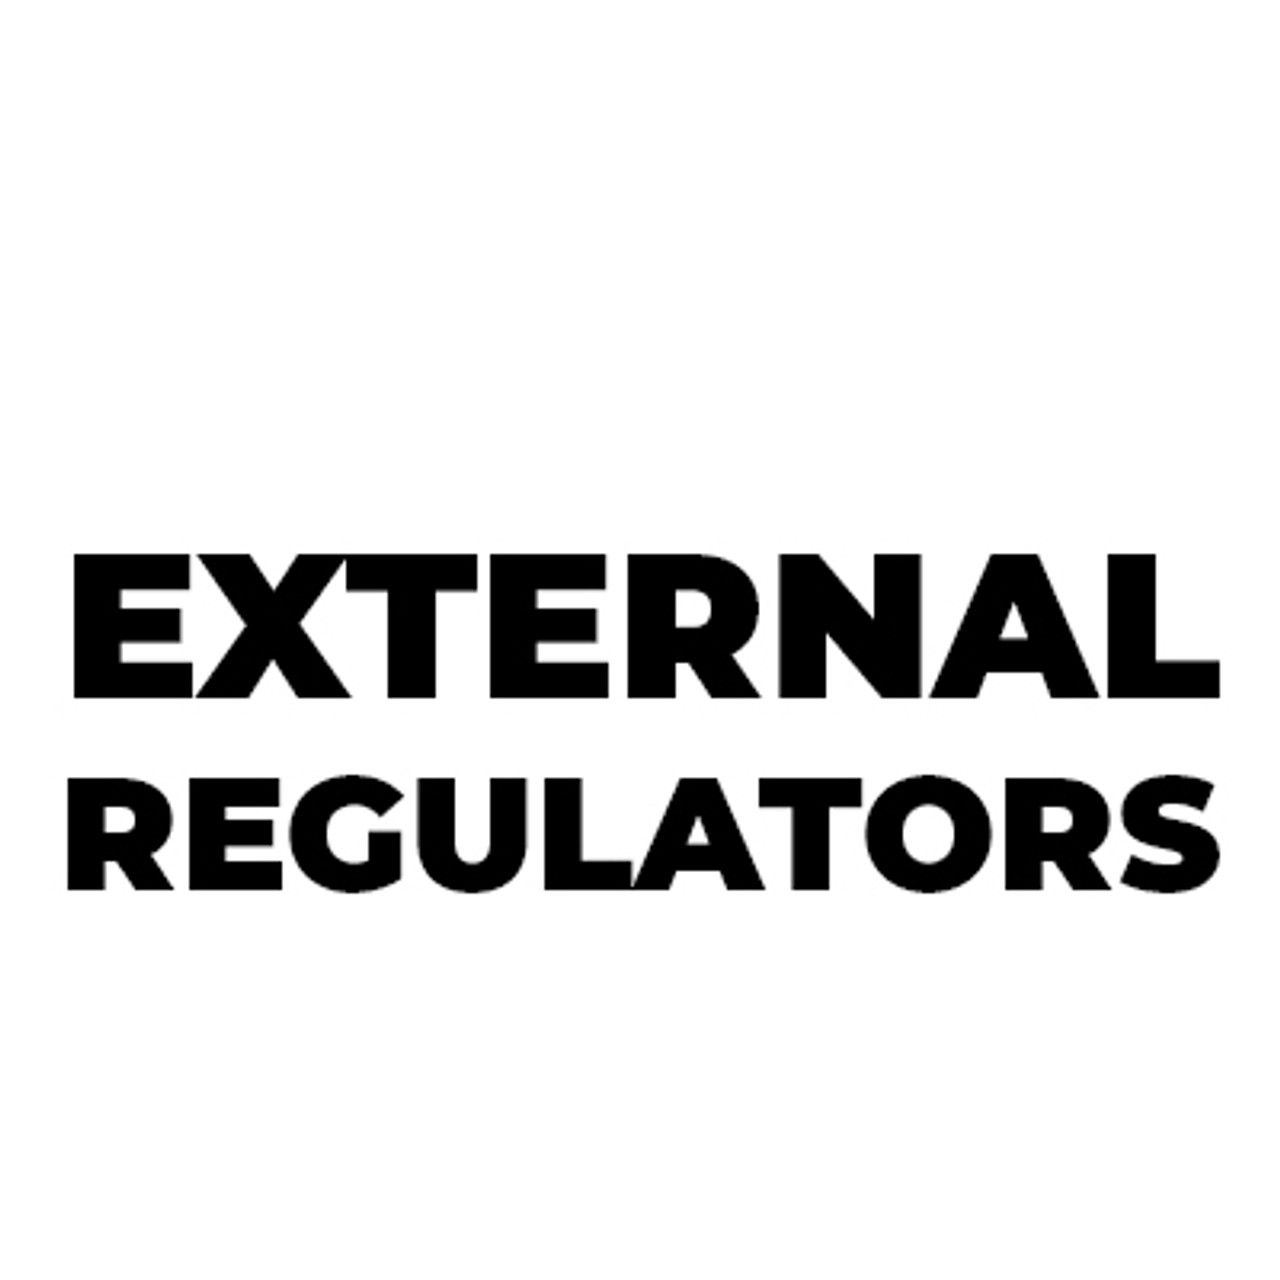 External Regulators